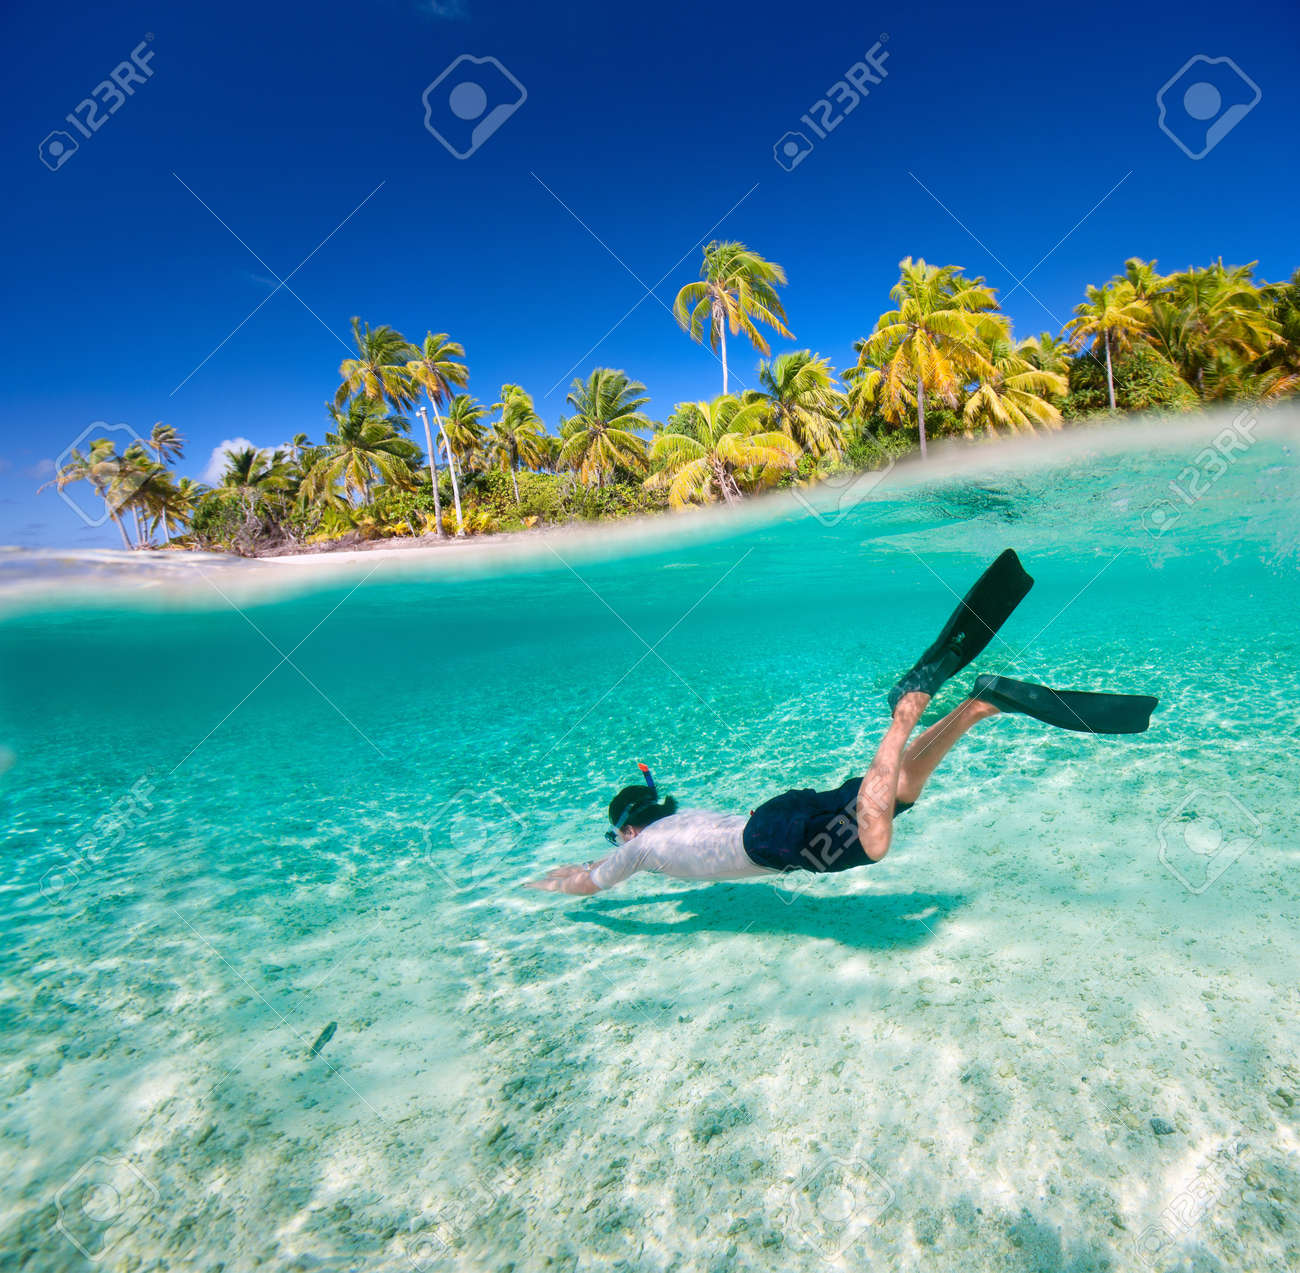 Man swimming underwater in a tropical lagoon Stock Photo - 16250771